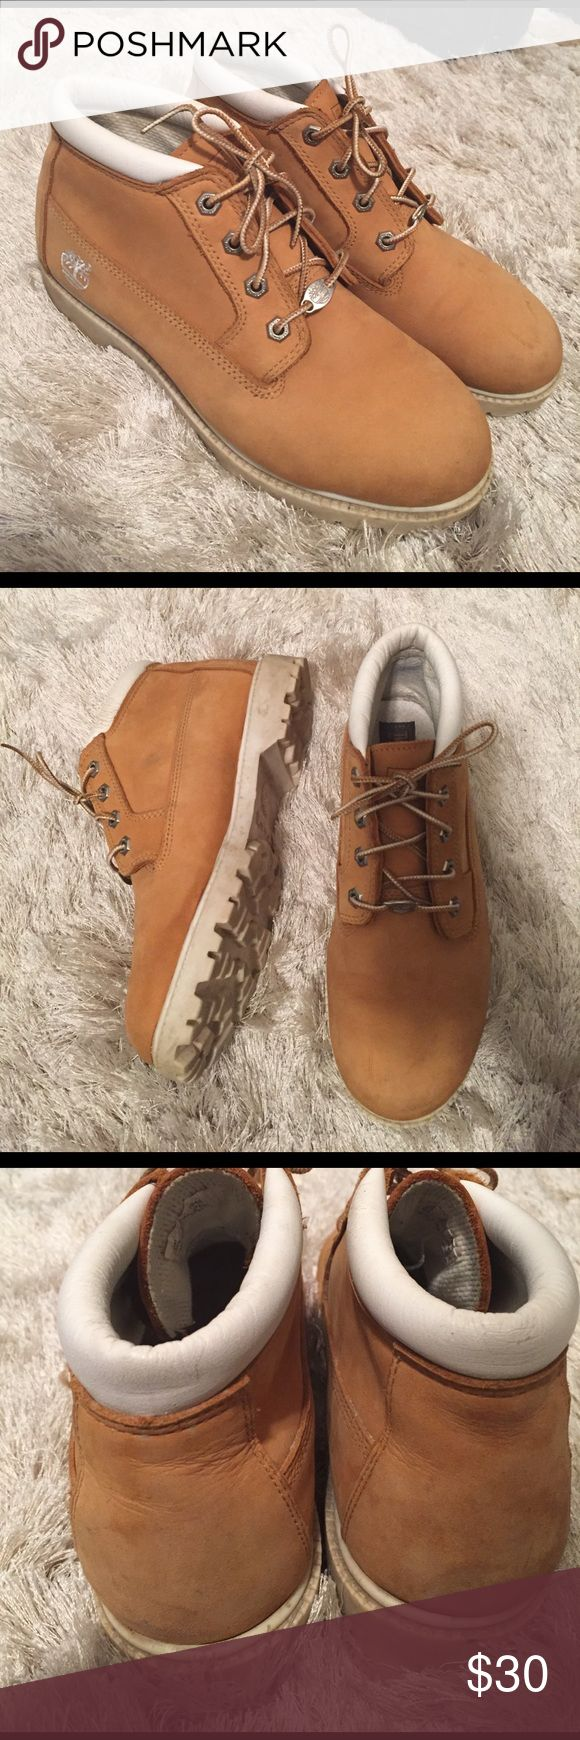 Women's Timberland Nellie boot | Sz 9 Great boots! Worn a few times so they do have scuff marks and some noticeable wear as shown in the pictures. Women's size 9. Timberland Shoes Winter & Rain Boots